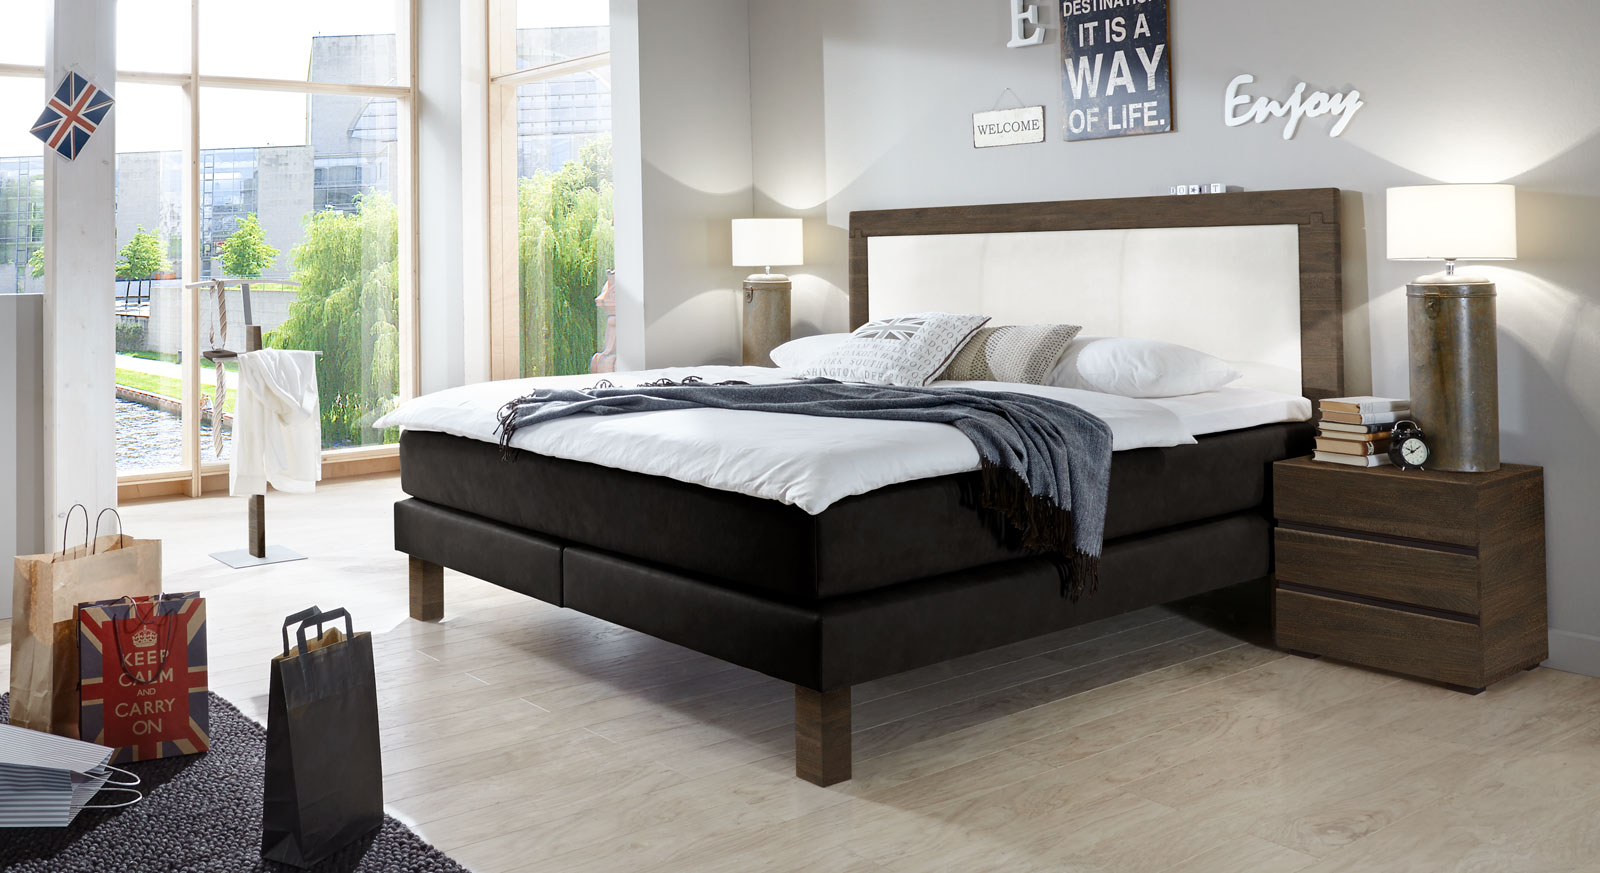 bett test optimiert. Black Bedroom Furniture Sets. Home Design Ideas